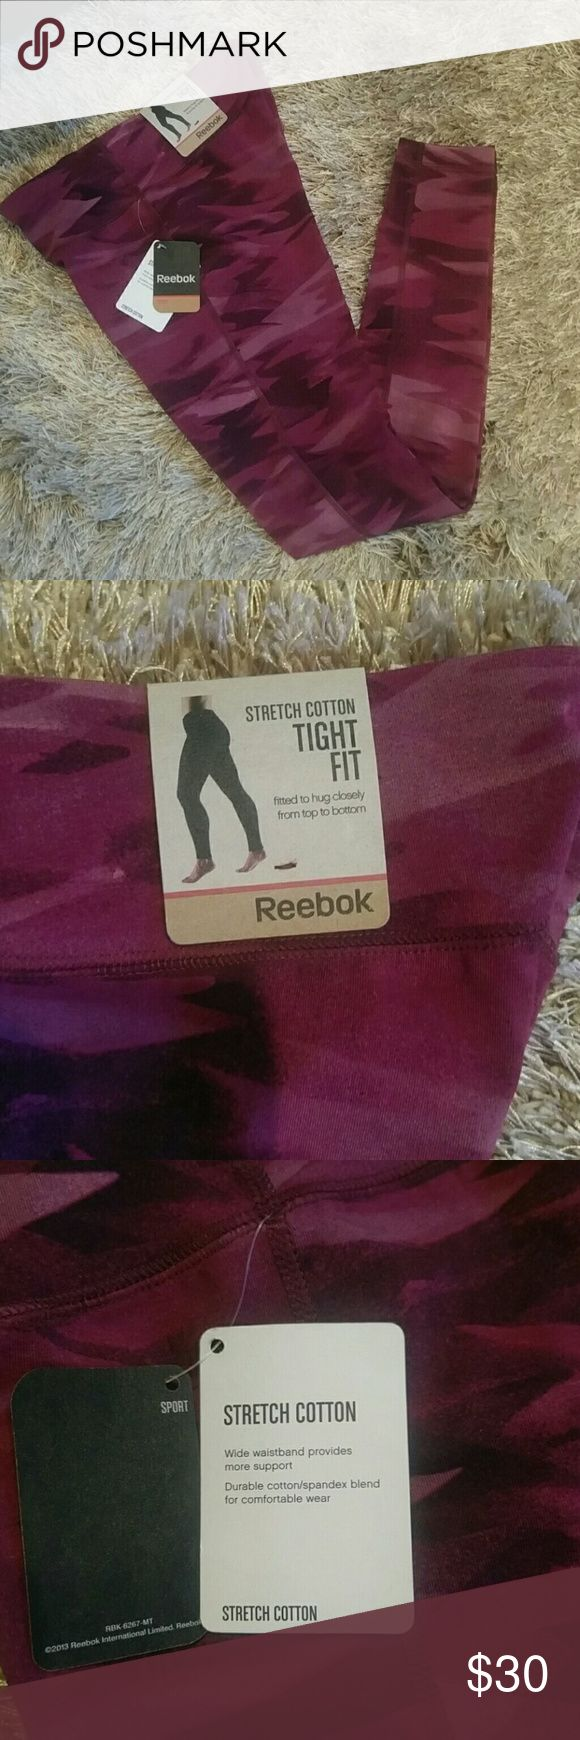 "NWT Reebok fitness essential tight NWT Reebok fitness essential printed legging in camo mystic maroon. Athletic tights,  fitted to hug closely from top to bottom.  28"" inseam,  cotton and spandex. Size XS. Reebok Pants Leggings"